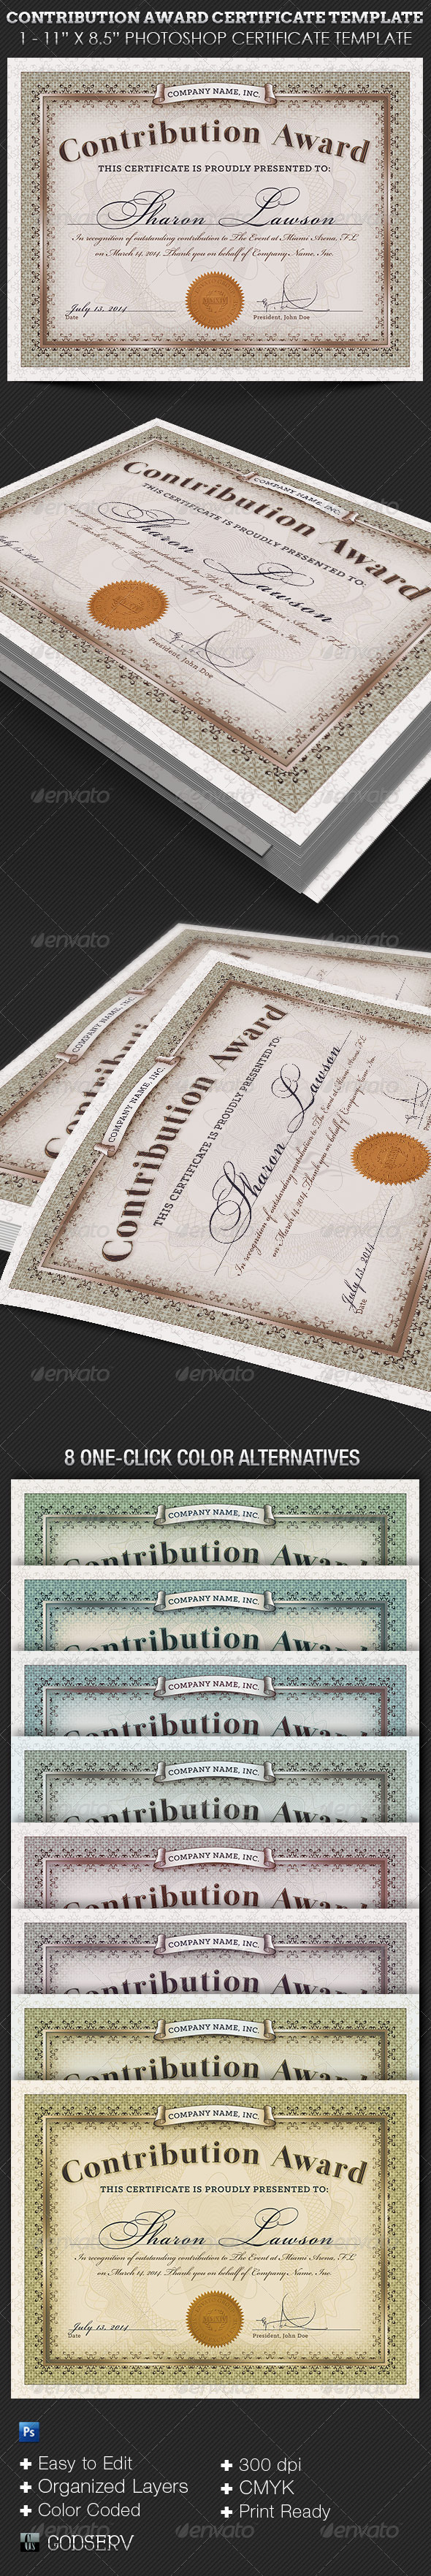 Contribution Award Certificate Template - Certificates Stationery